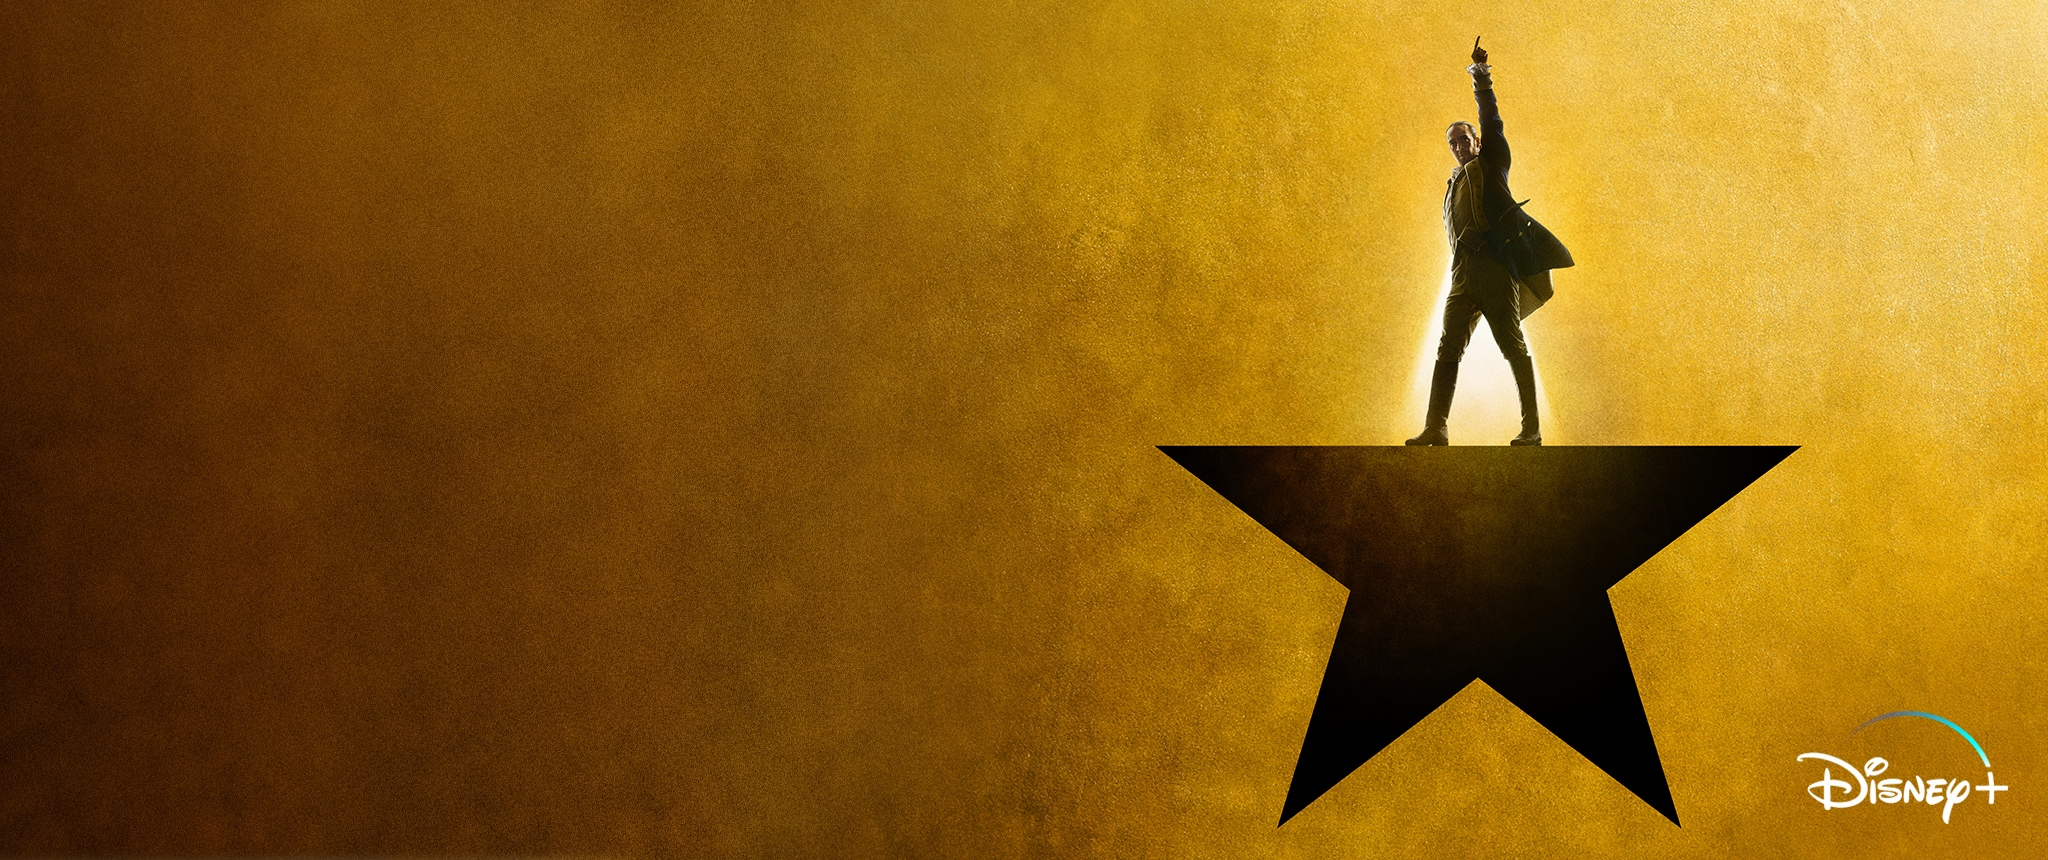 Hero - Disney+ - Hamilton on Disney+ Trailer - Streaming NOW